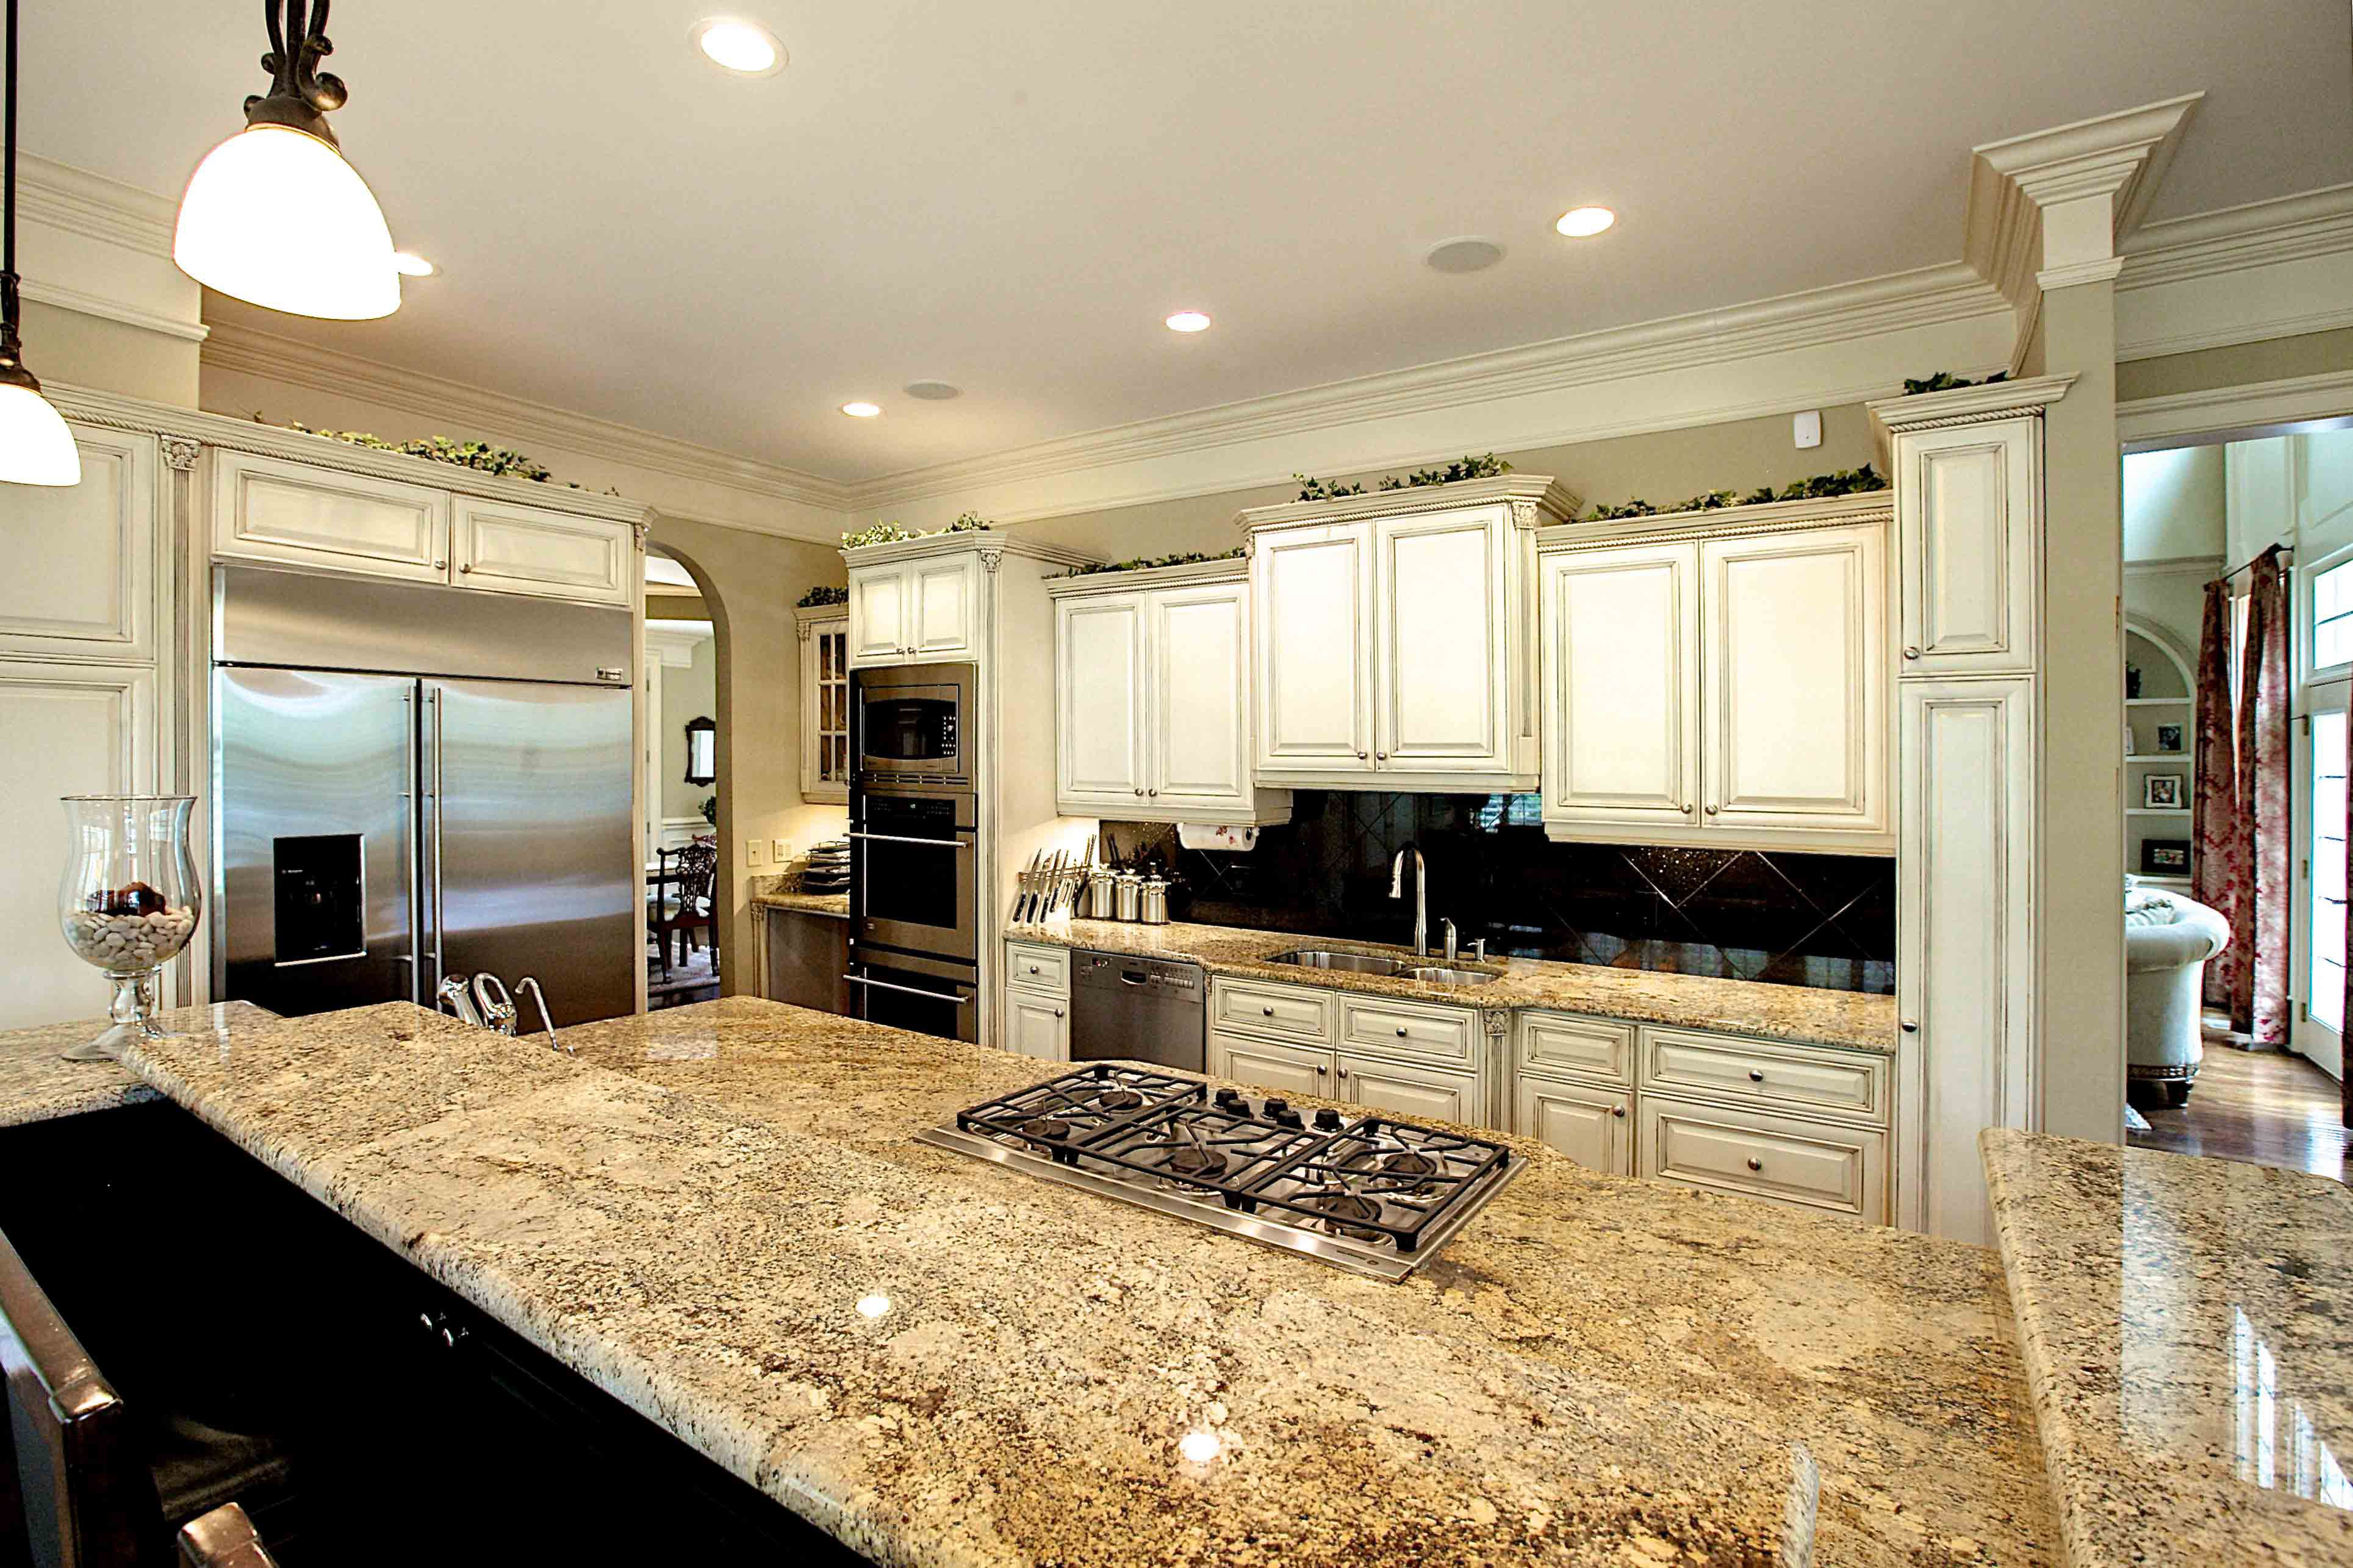 Juparana Persa Granite Backsplash Is Large Dark Tiles